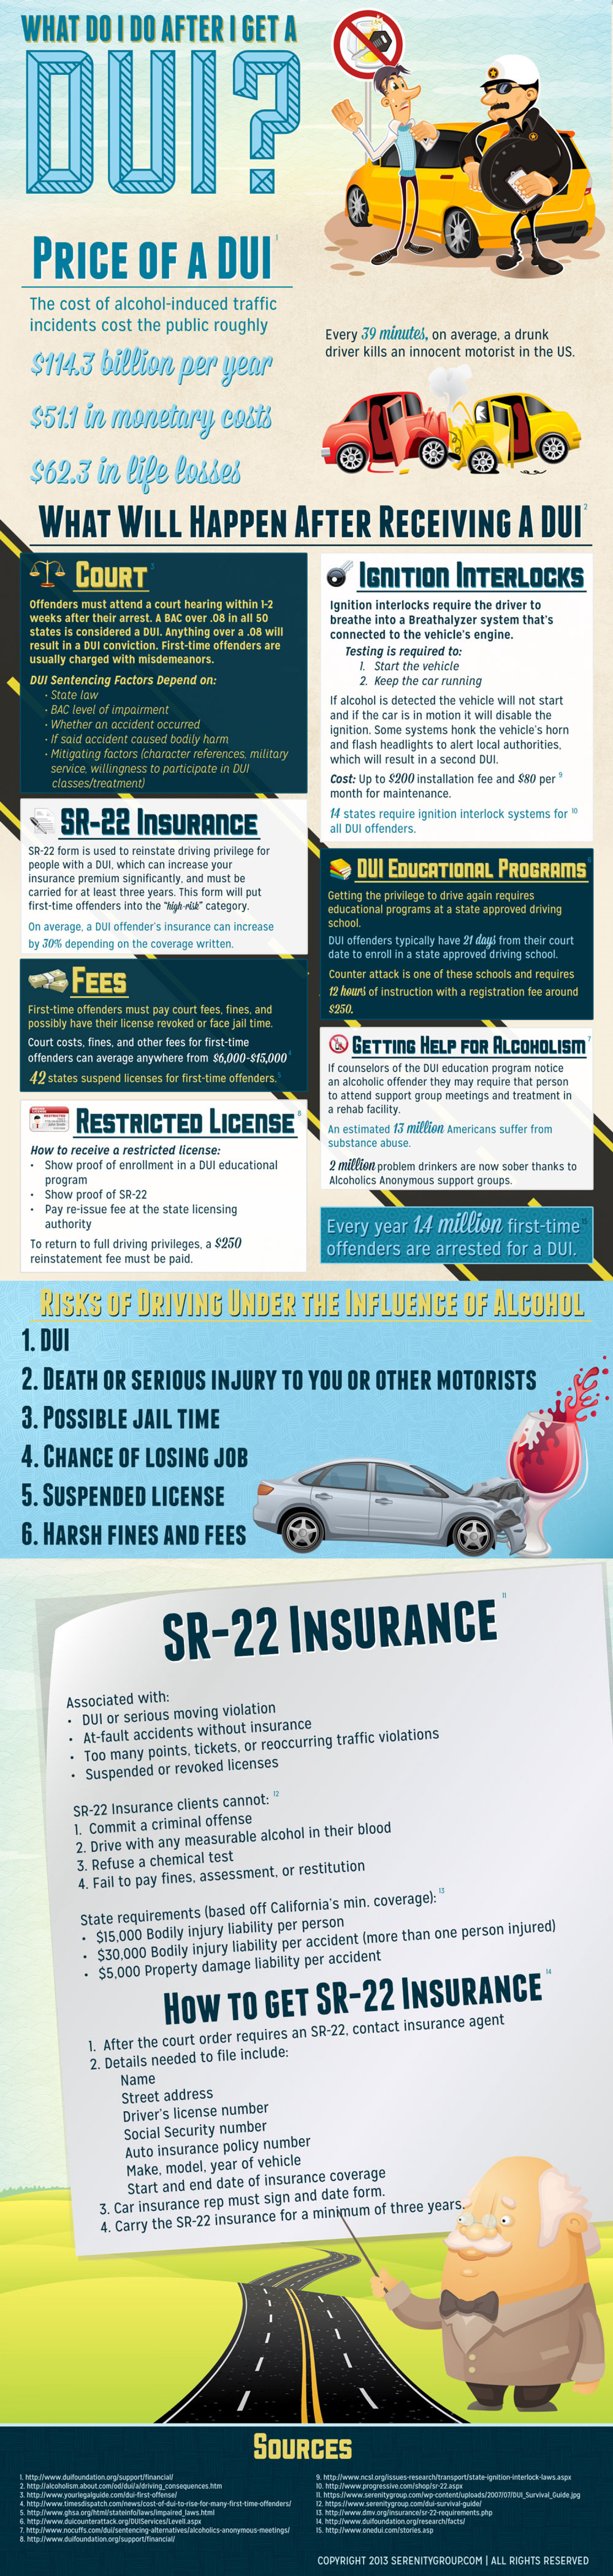 What Do I Do After I Get A DUI Infographic